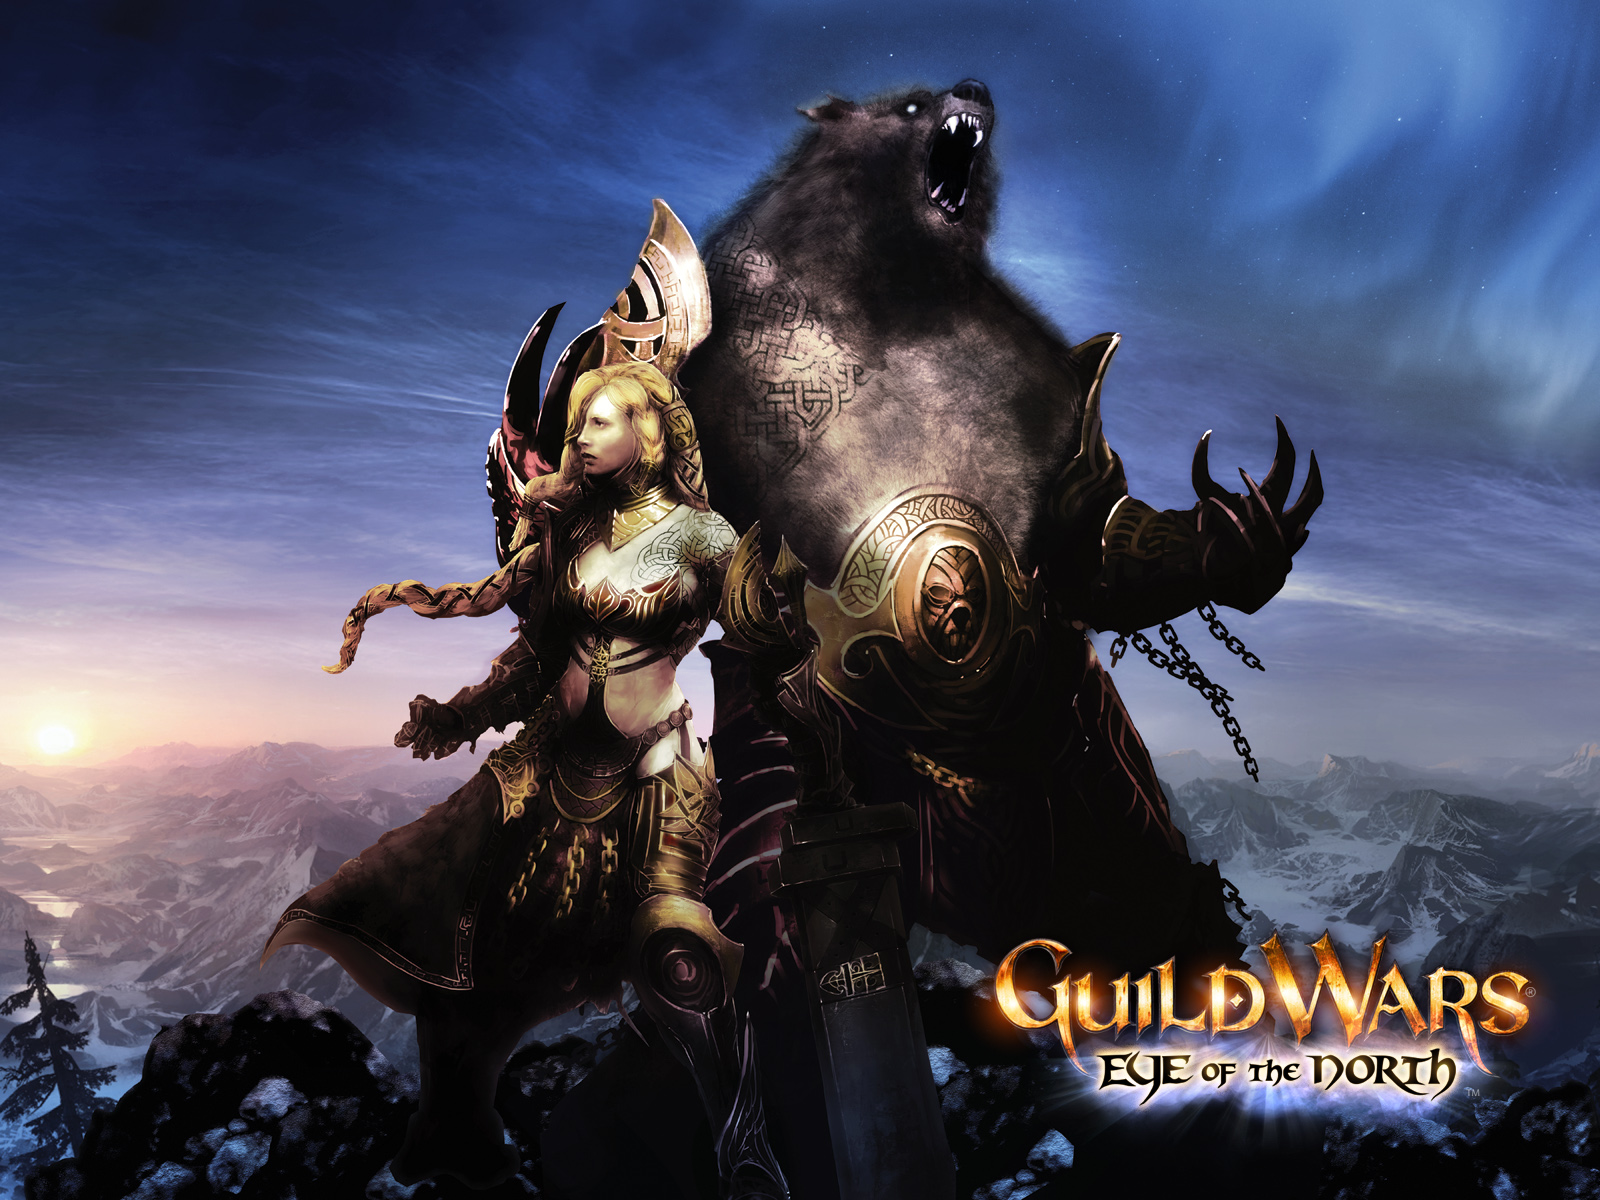 Guild_Wars_Eye_of_the_north_02_1600x1200.jpg